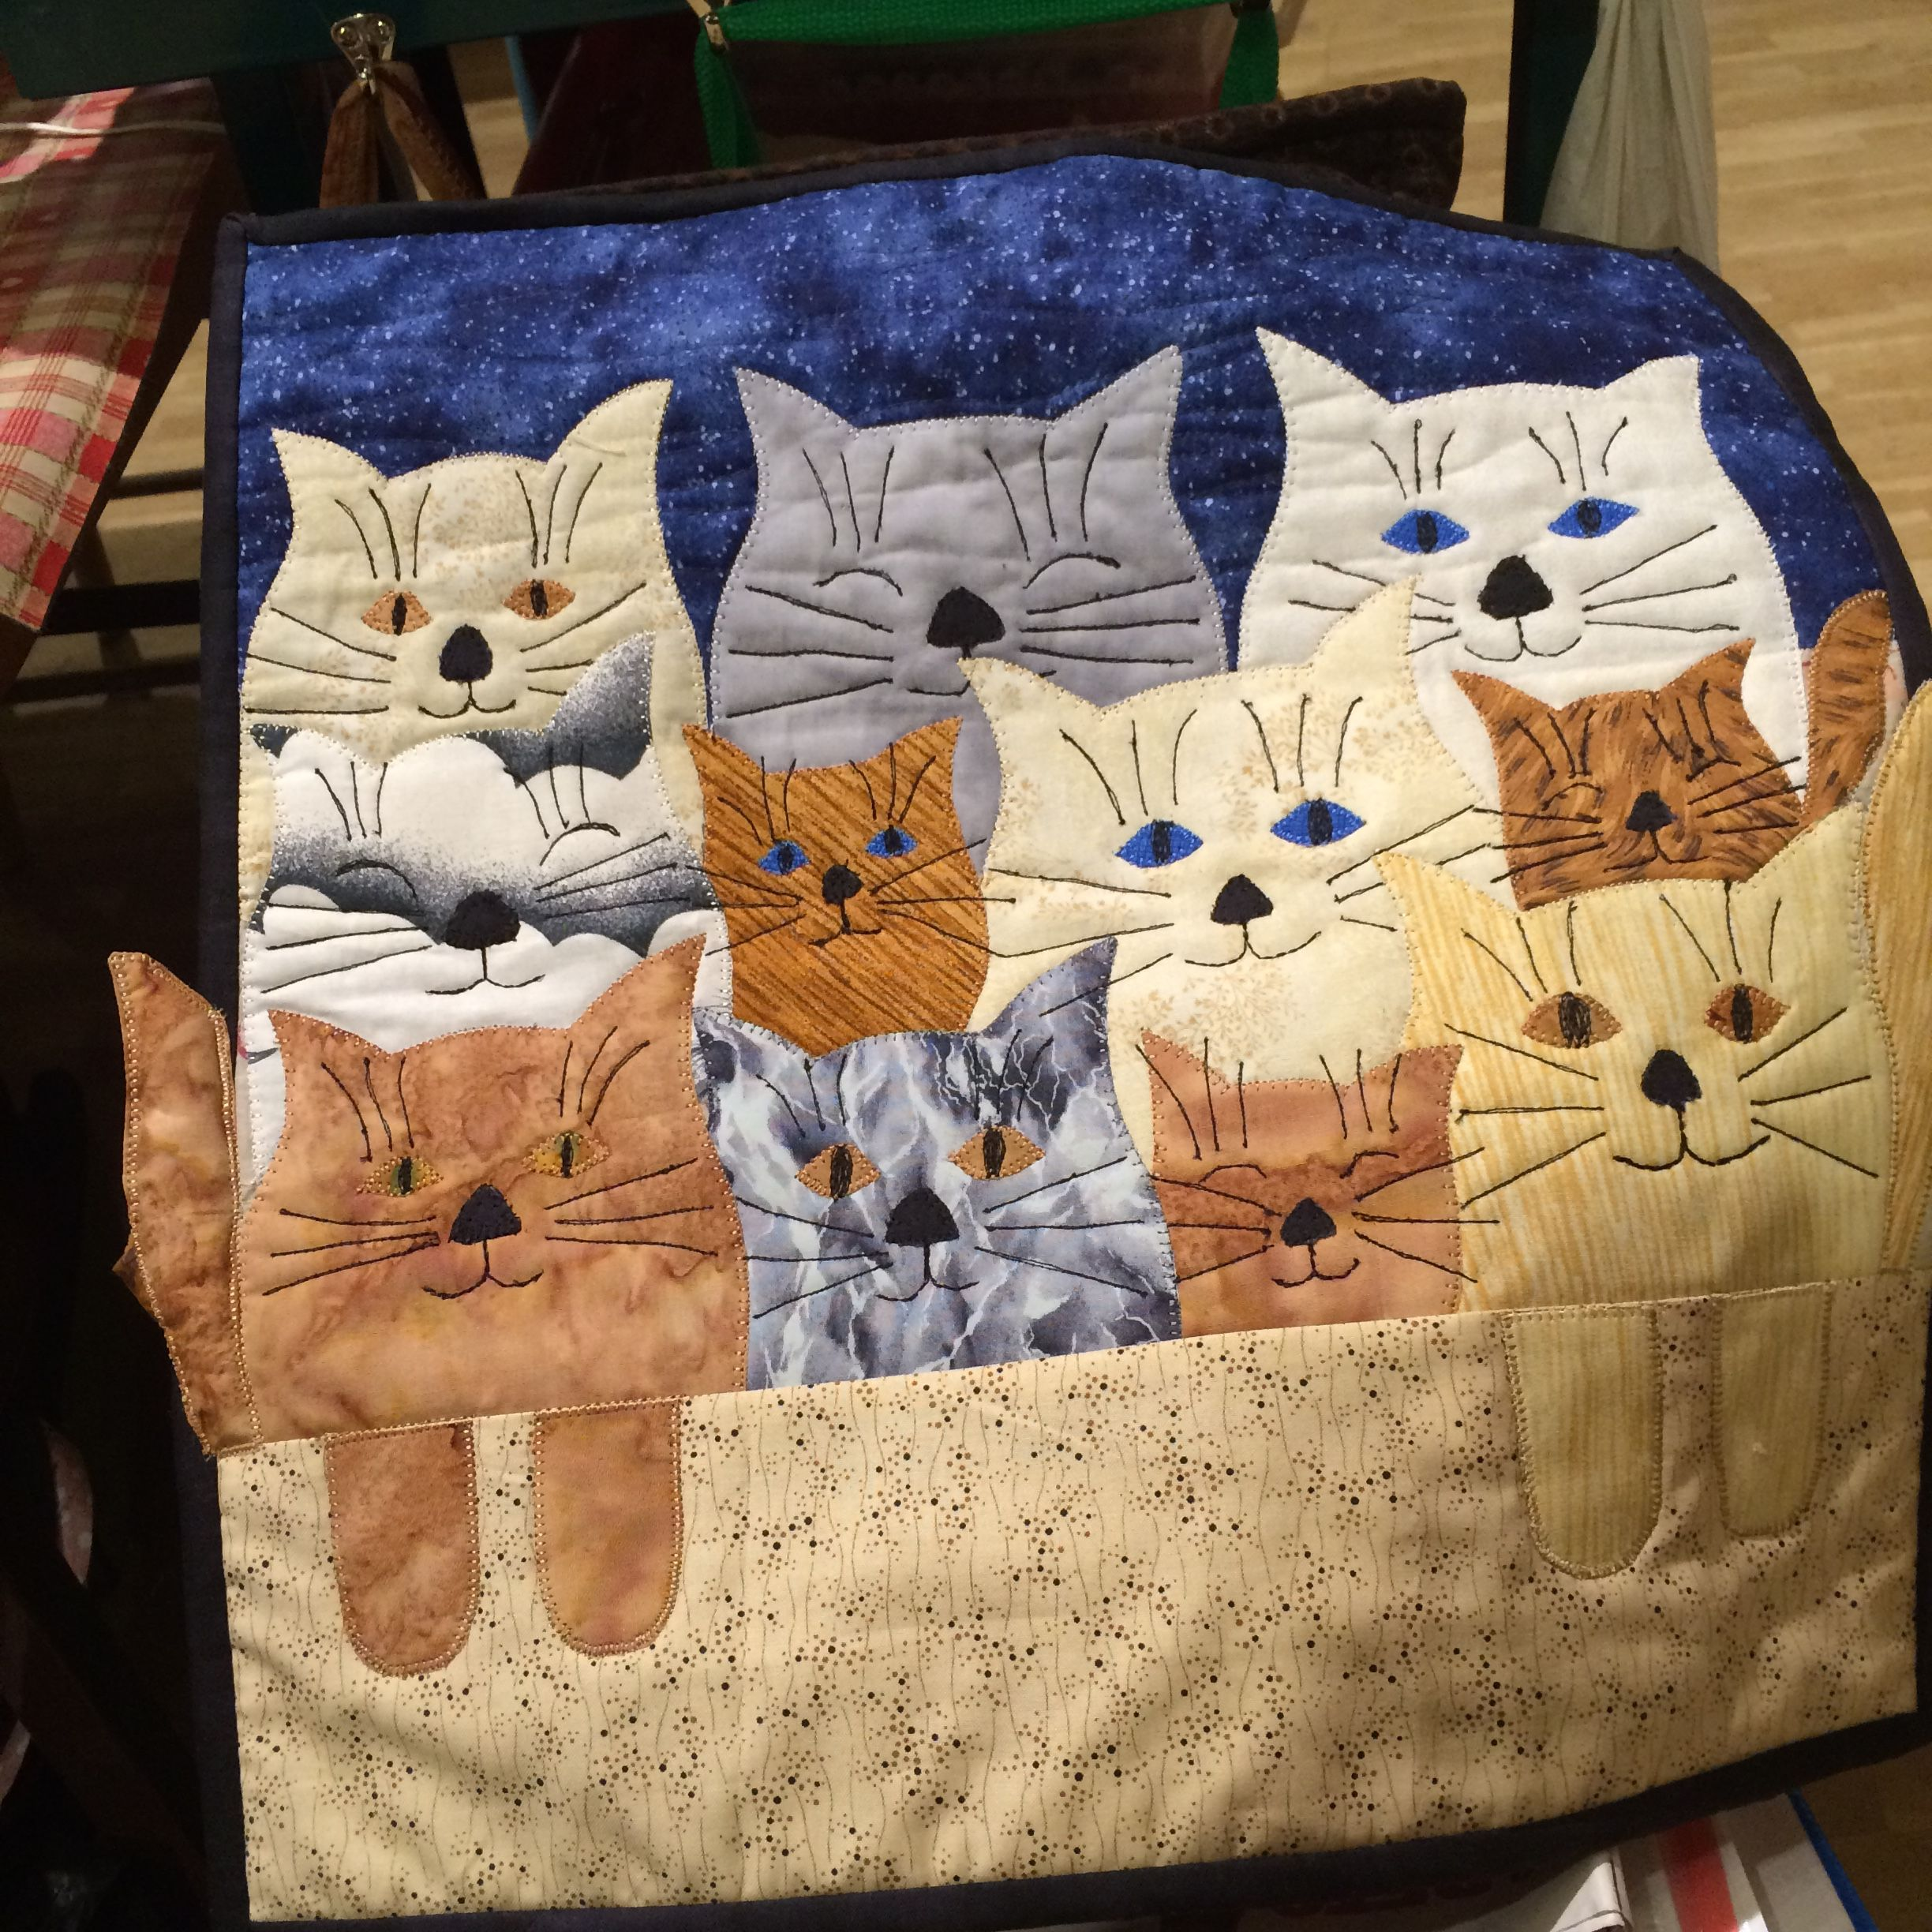 For my mother, who loves cats